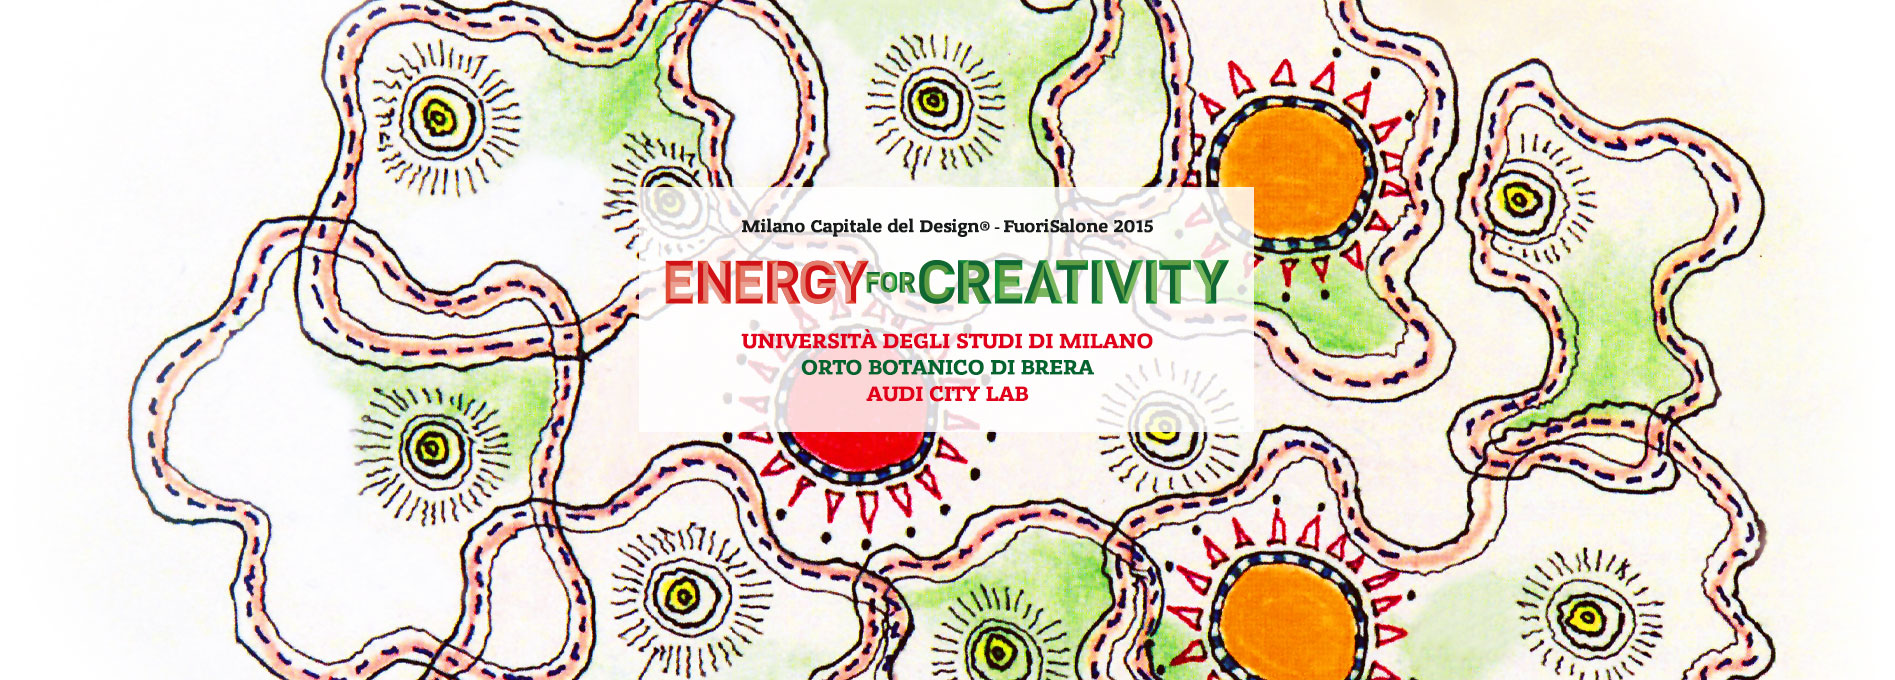 FuoriSalone 2015 <br/>ENERGY FOR CREATIVITY<br/>an event by INTERNI